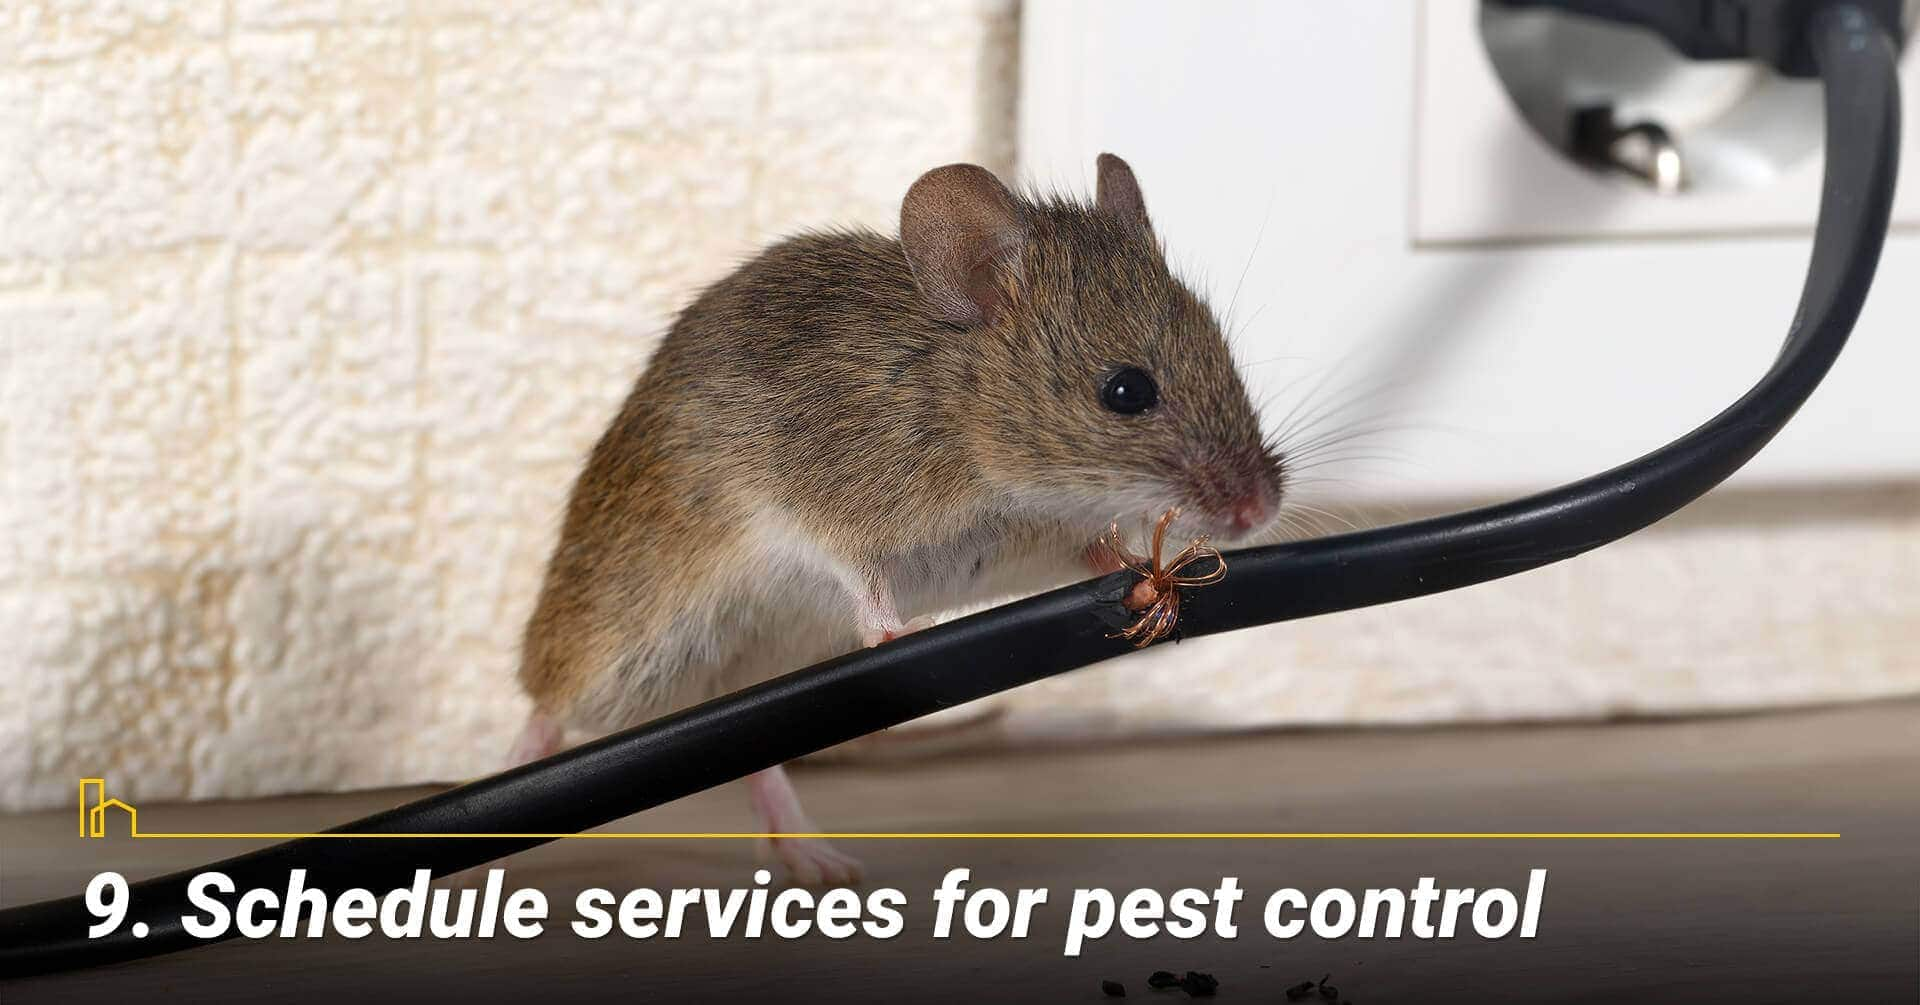 Schedule services for pest control